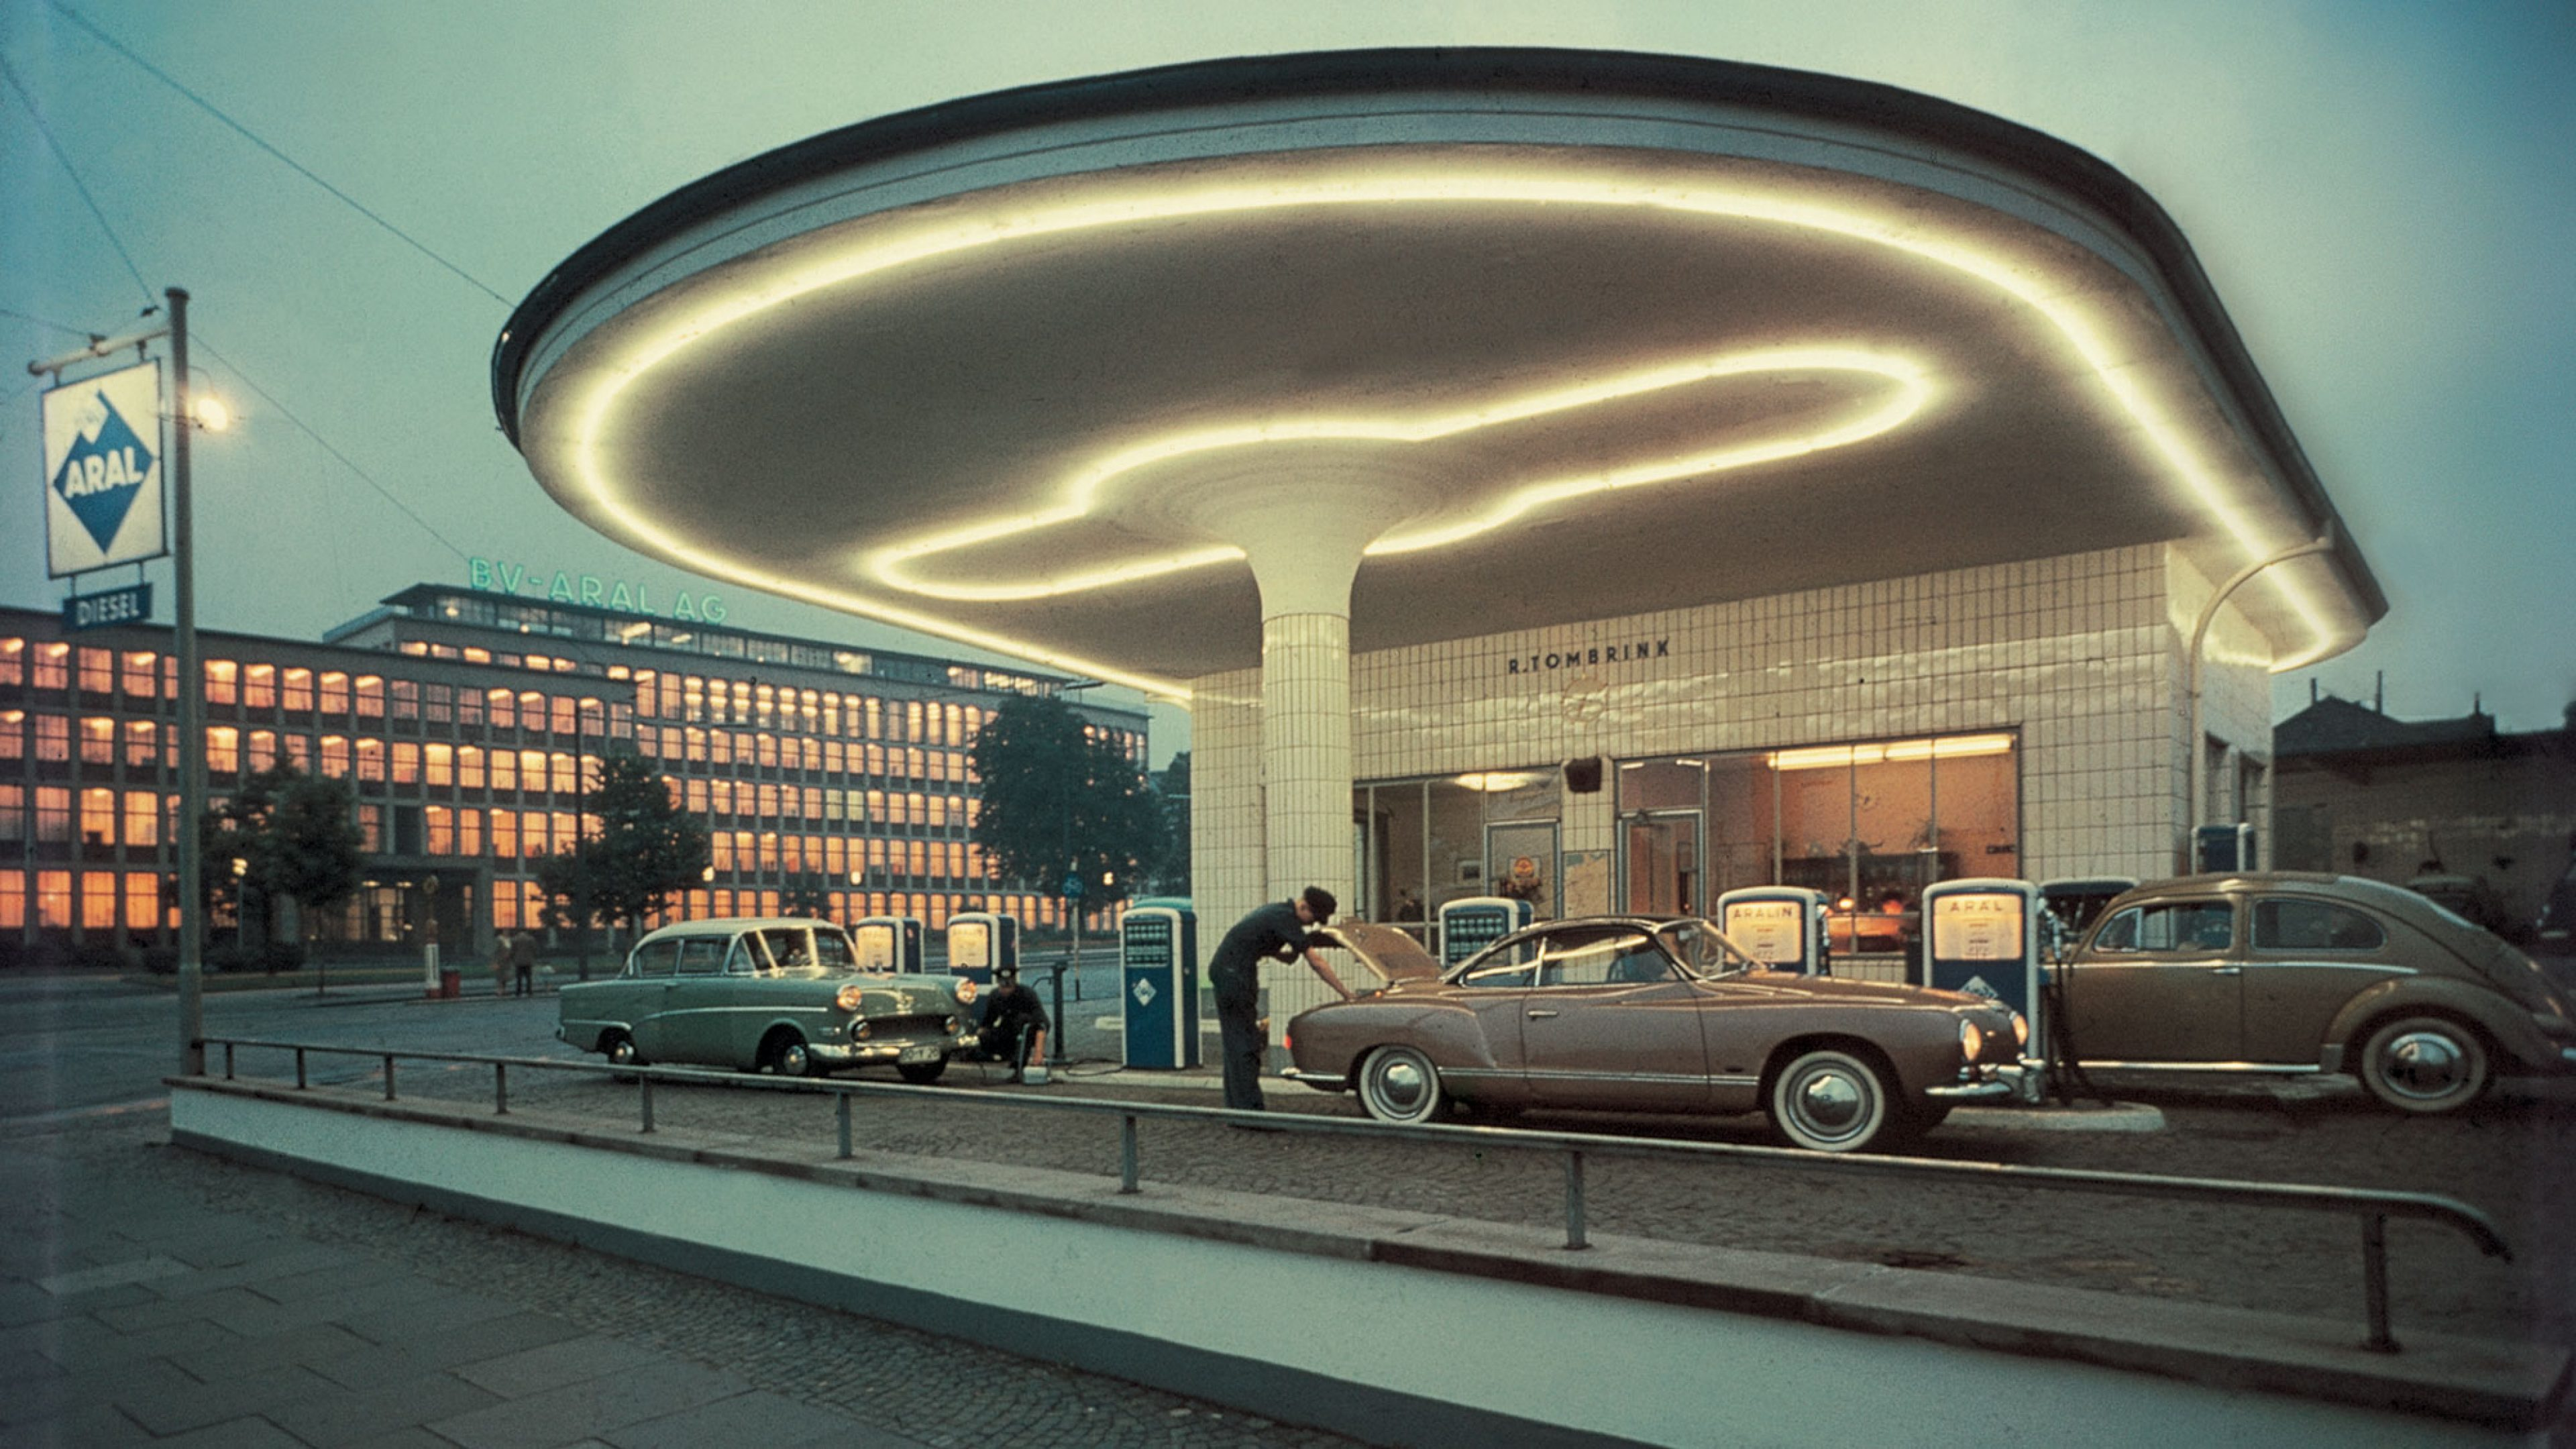 Aral service station outside the Aral headquarters in Bochum, Germany, during the 1960s